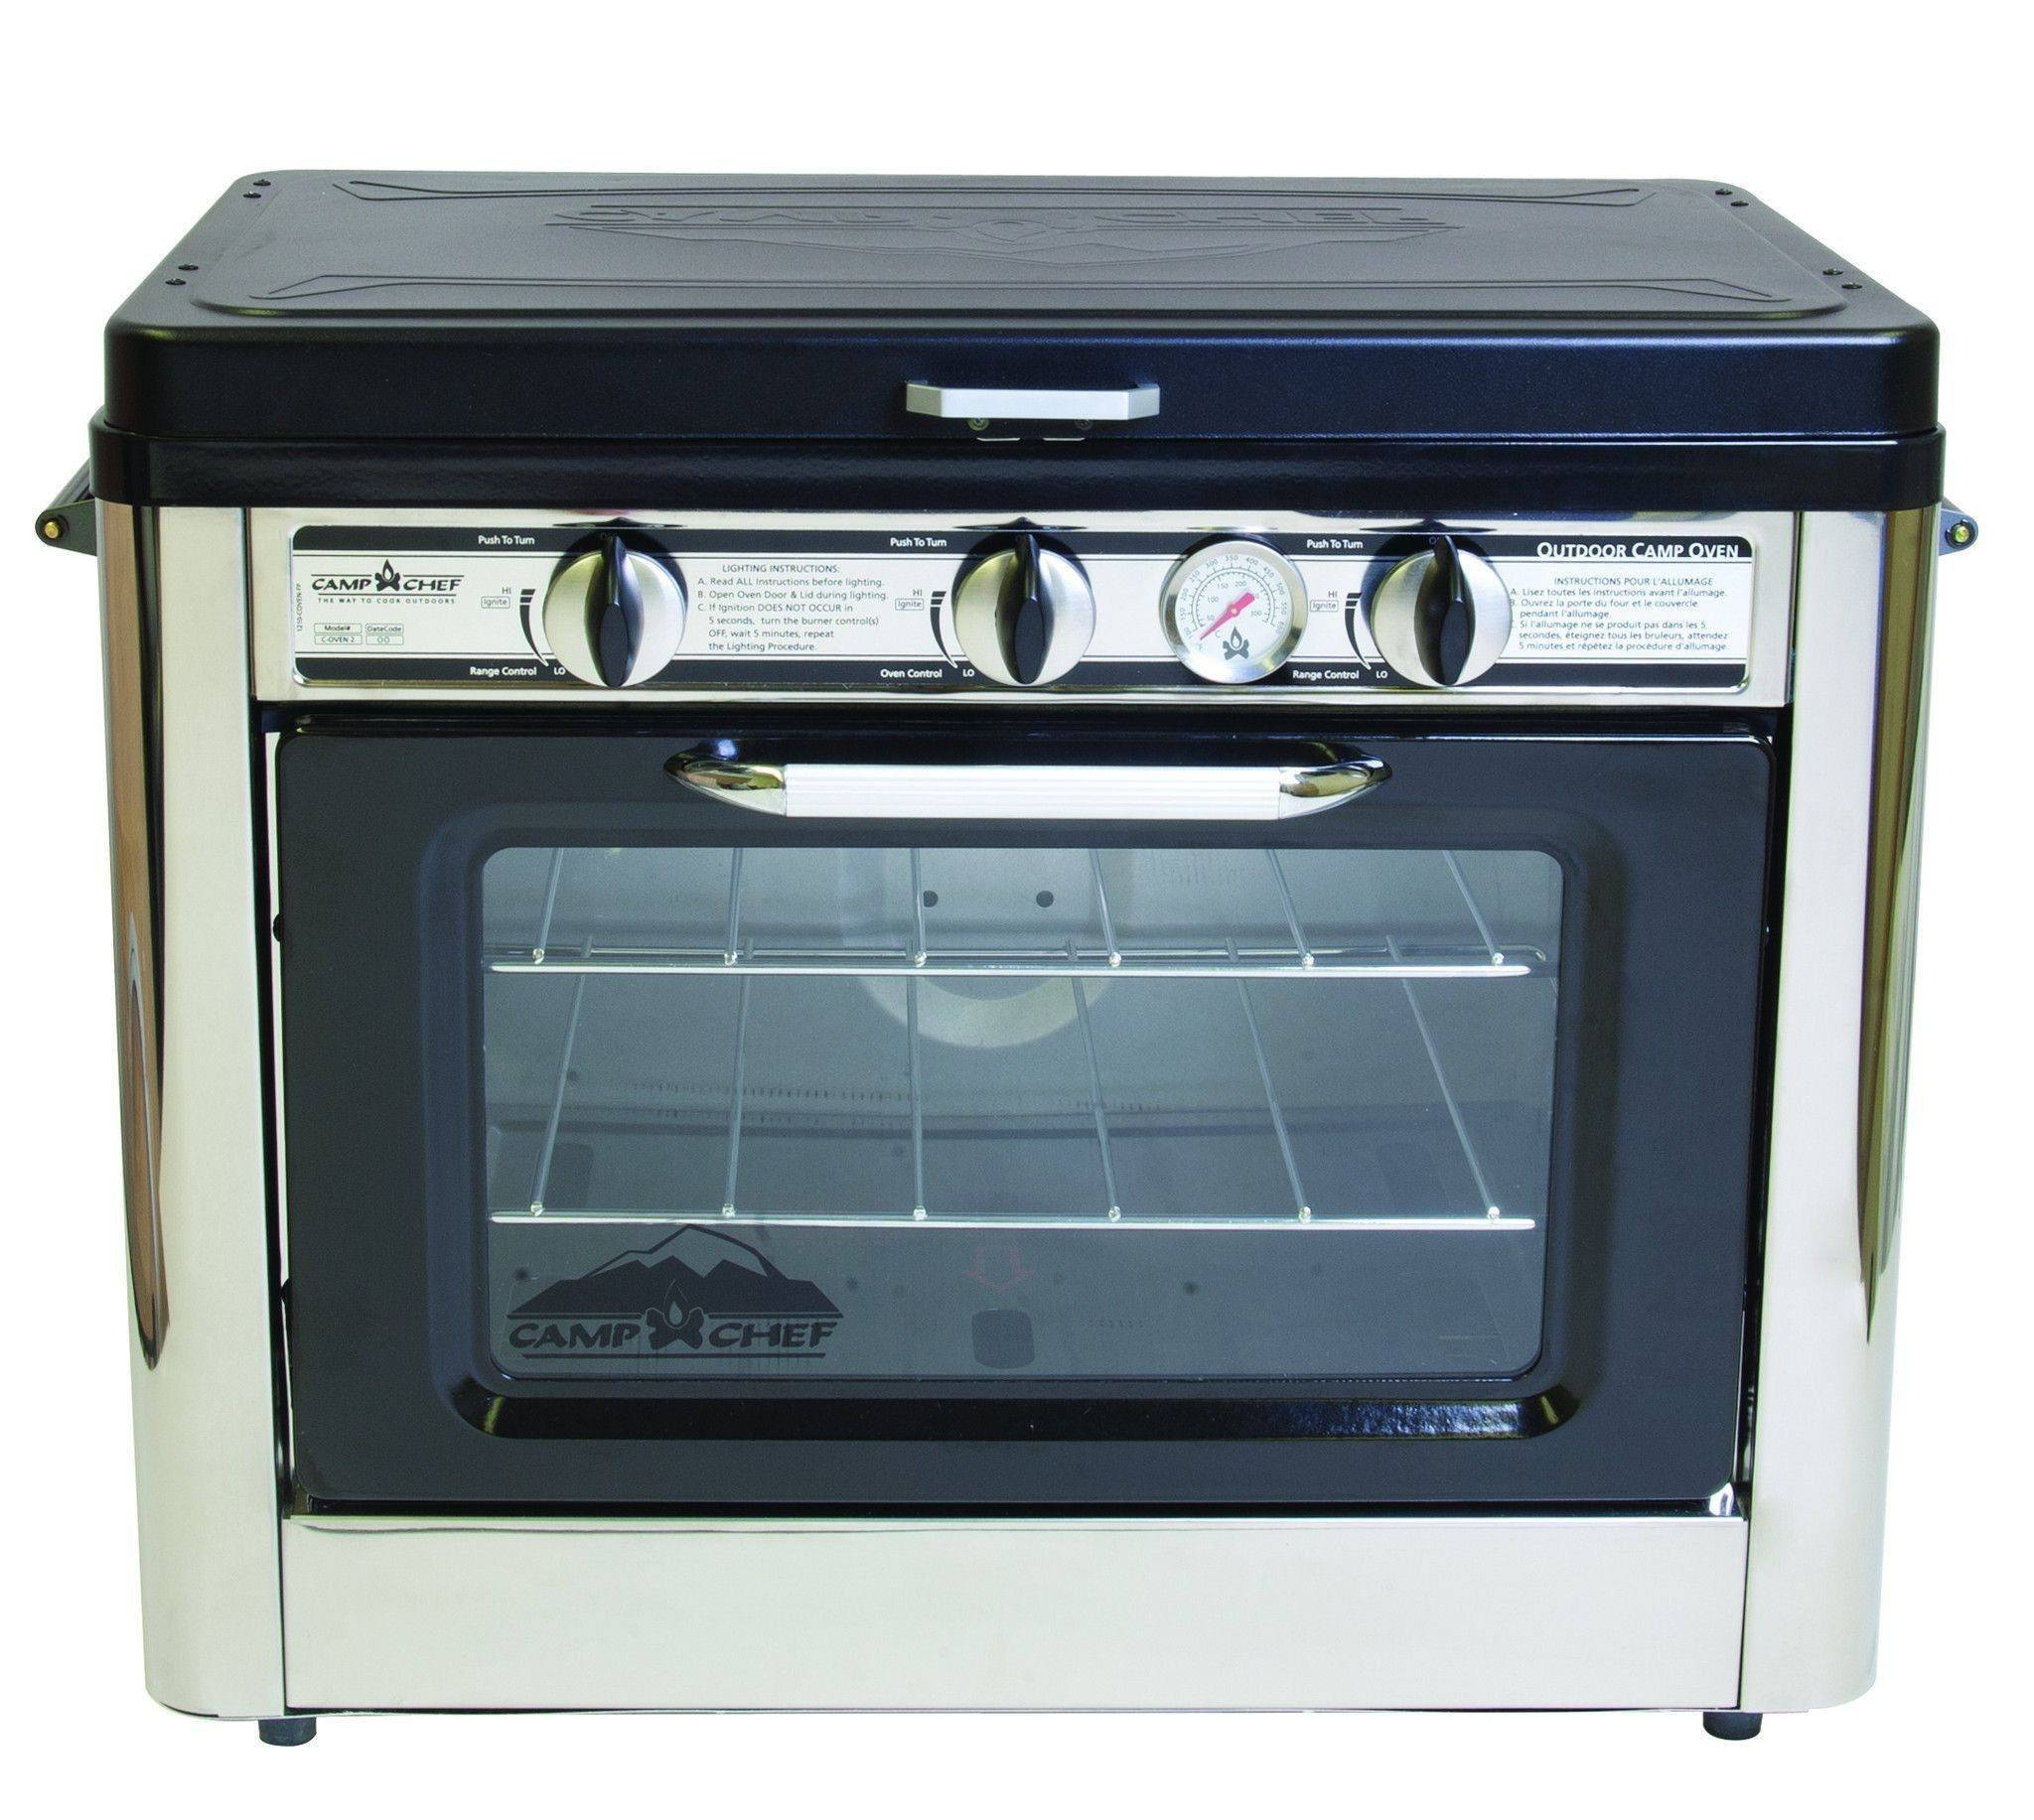 Amazing ... Deluxe Outdoor Oven   With Built In 2 Burner Stove Camp Stoves Trail  Kitchens ...